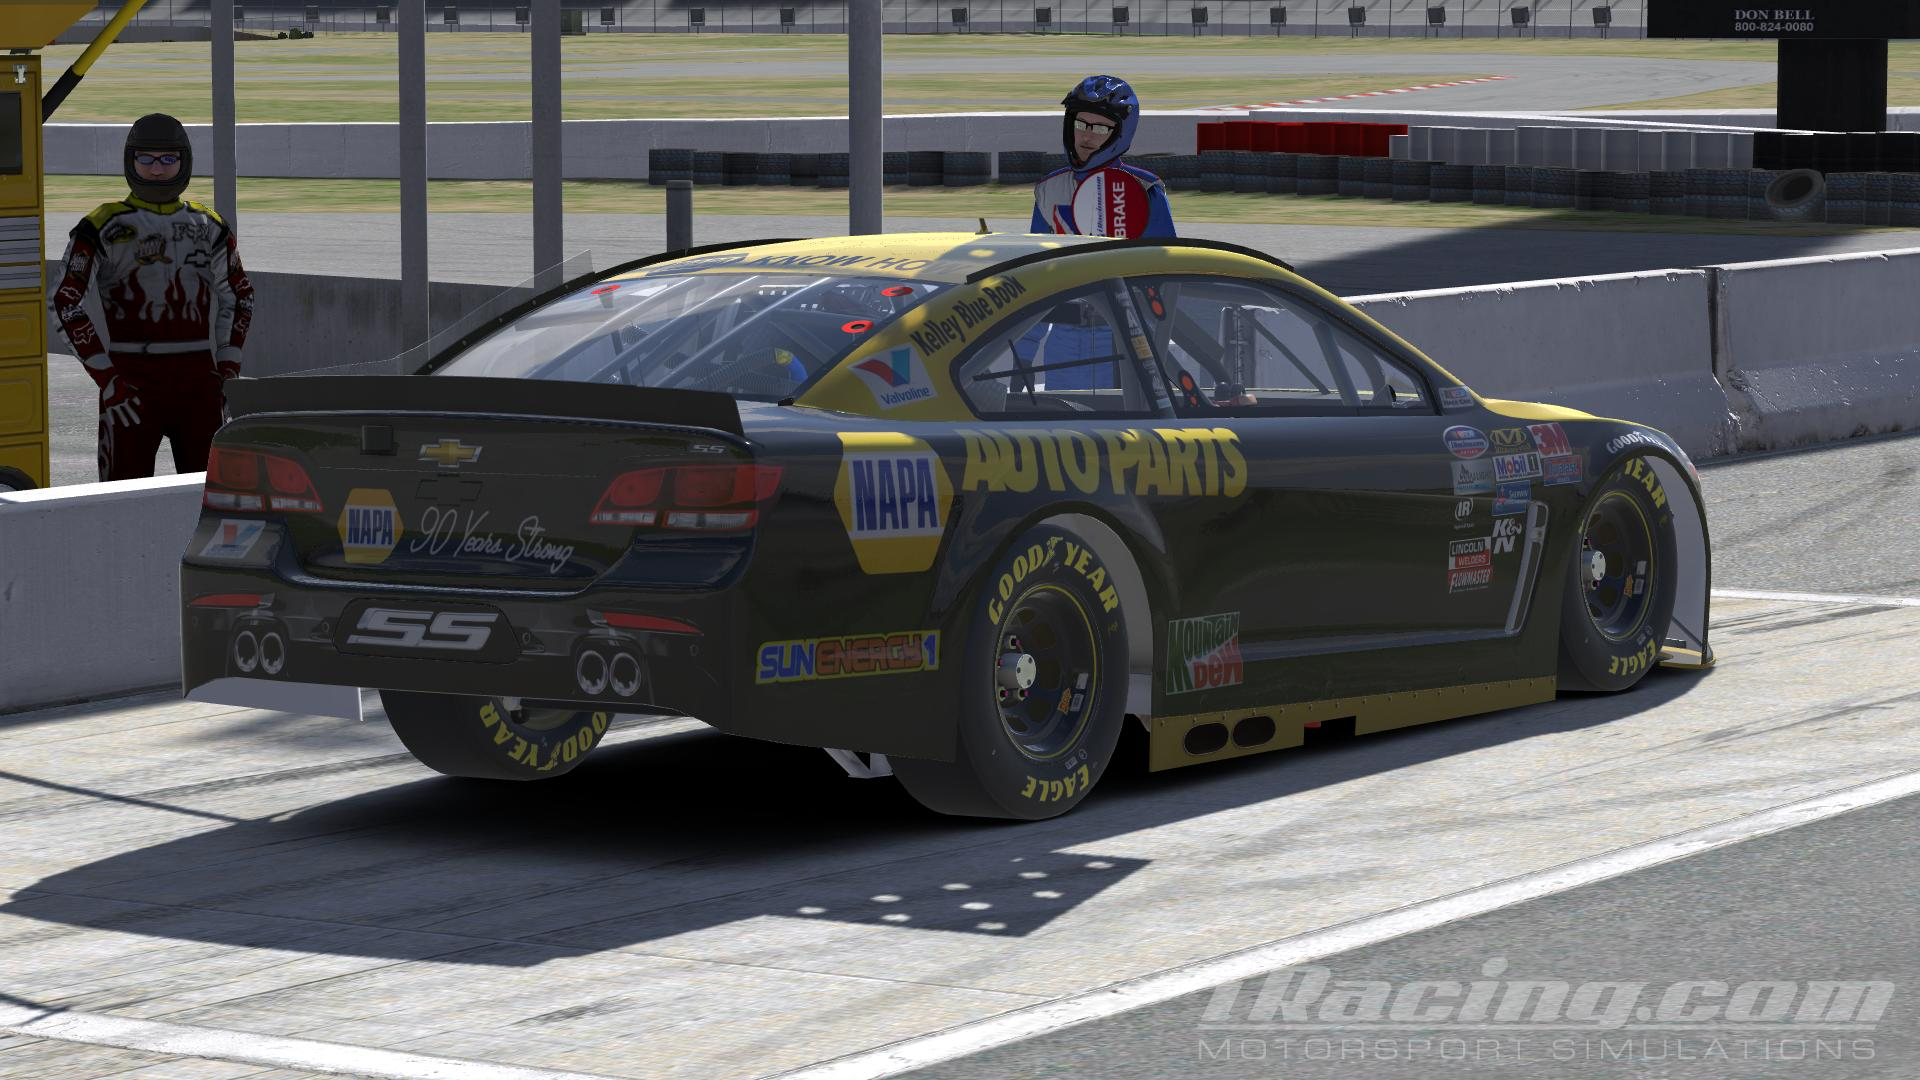 24 chase elliott napa auto parts throwback 2016 by udo washeim trading paints. Black Bedroom Furniture Sets. Home Design Ideas